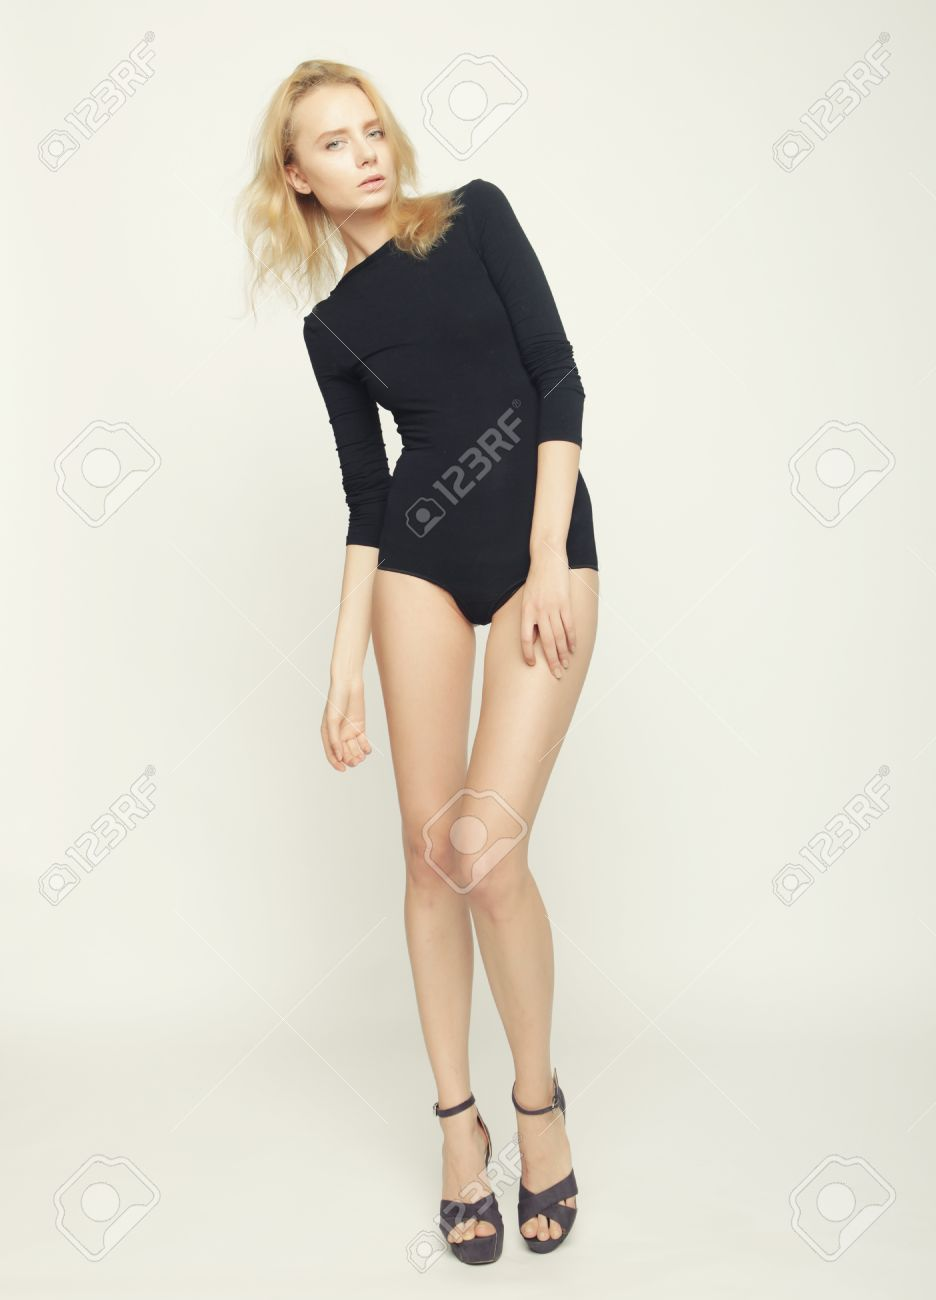 bf96f77bca3 beautiful fashion model woman with perfect slim body and long legs Stock  Photo - 38812965